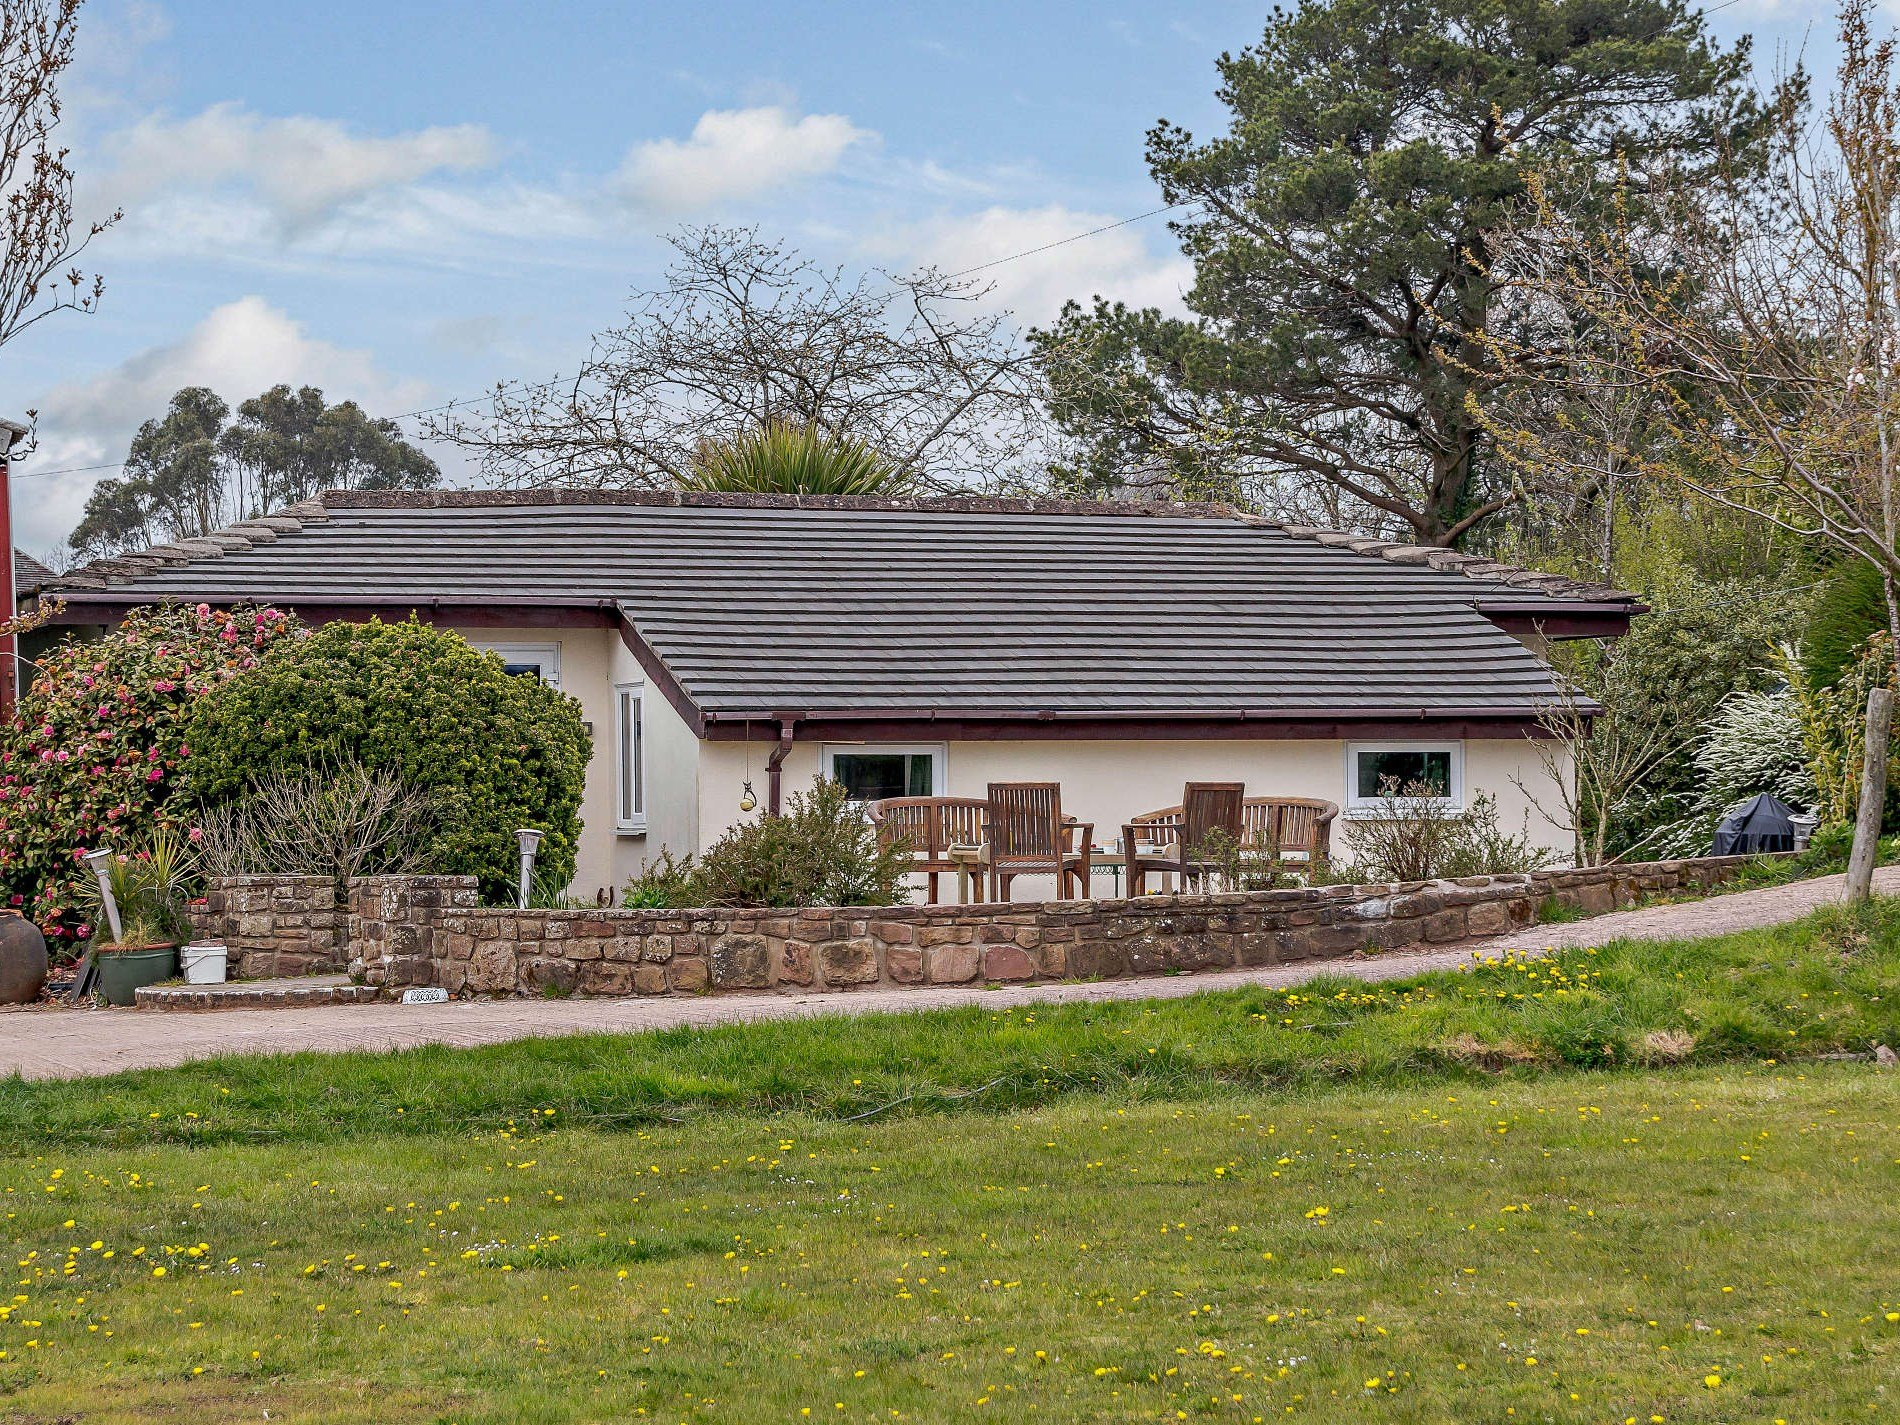 3 Bedroom Bungalow in Herefordshire, Pembrokeshire and the South